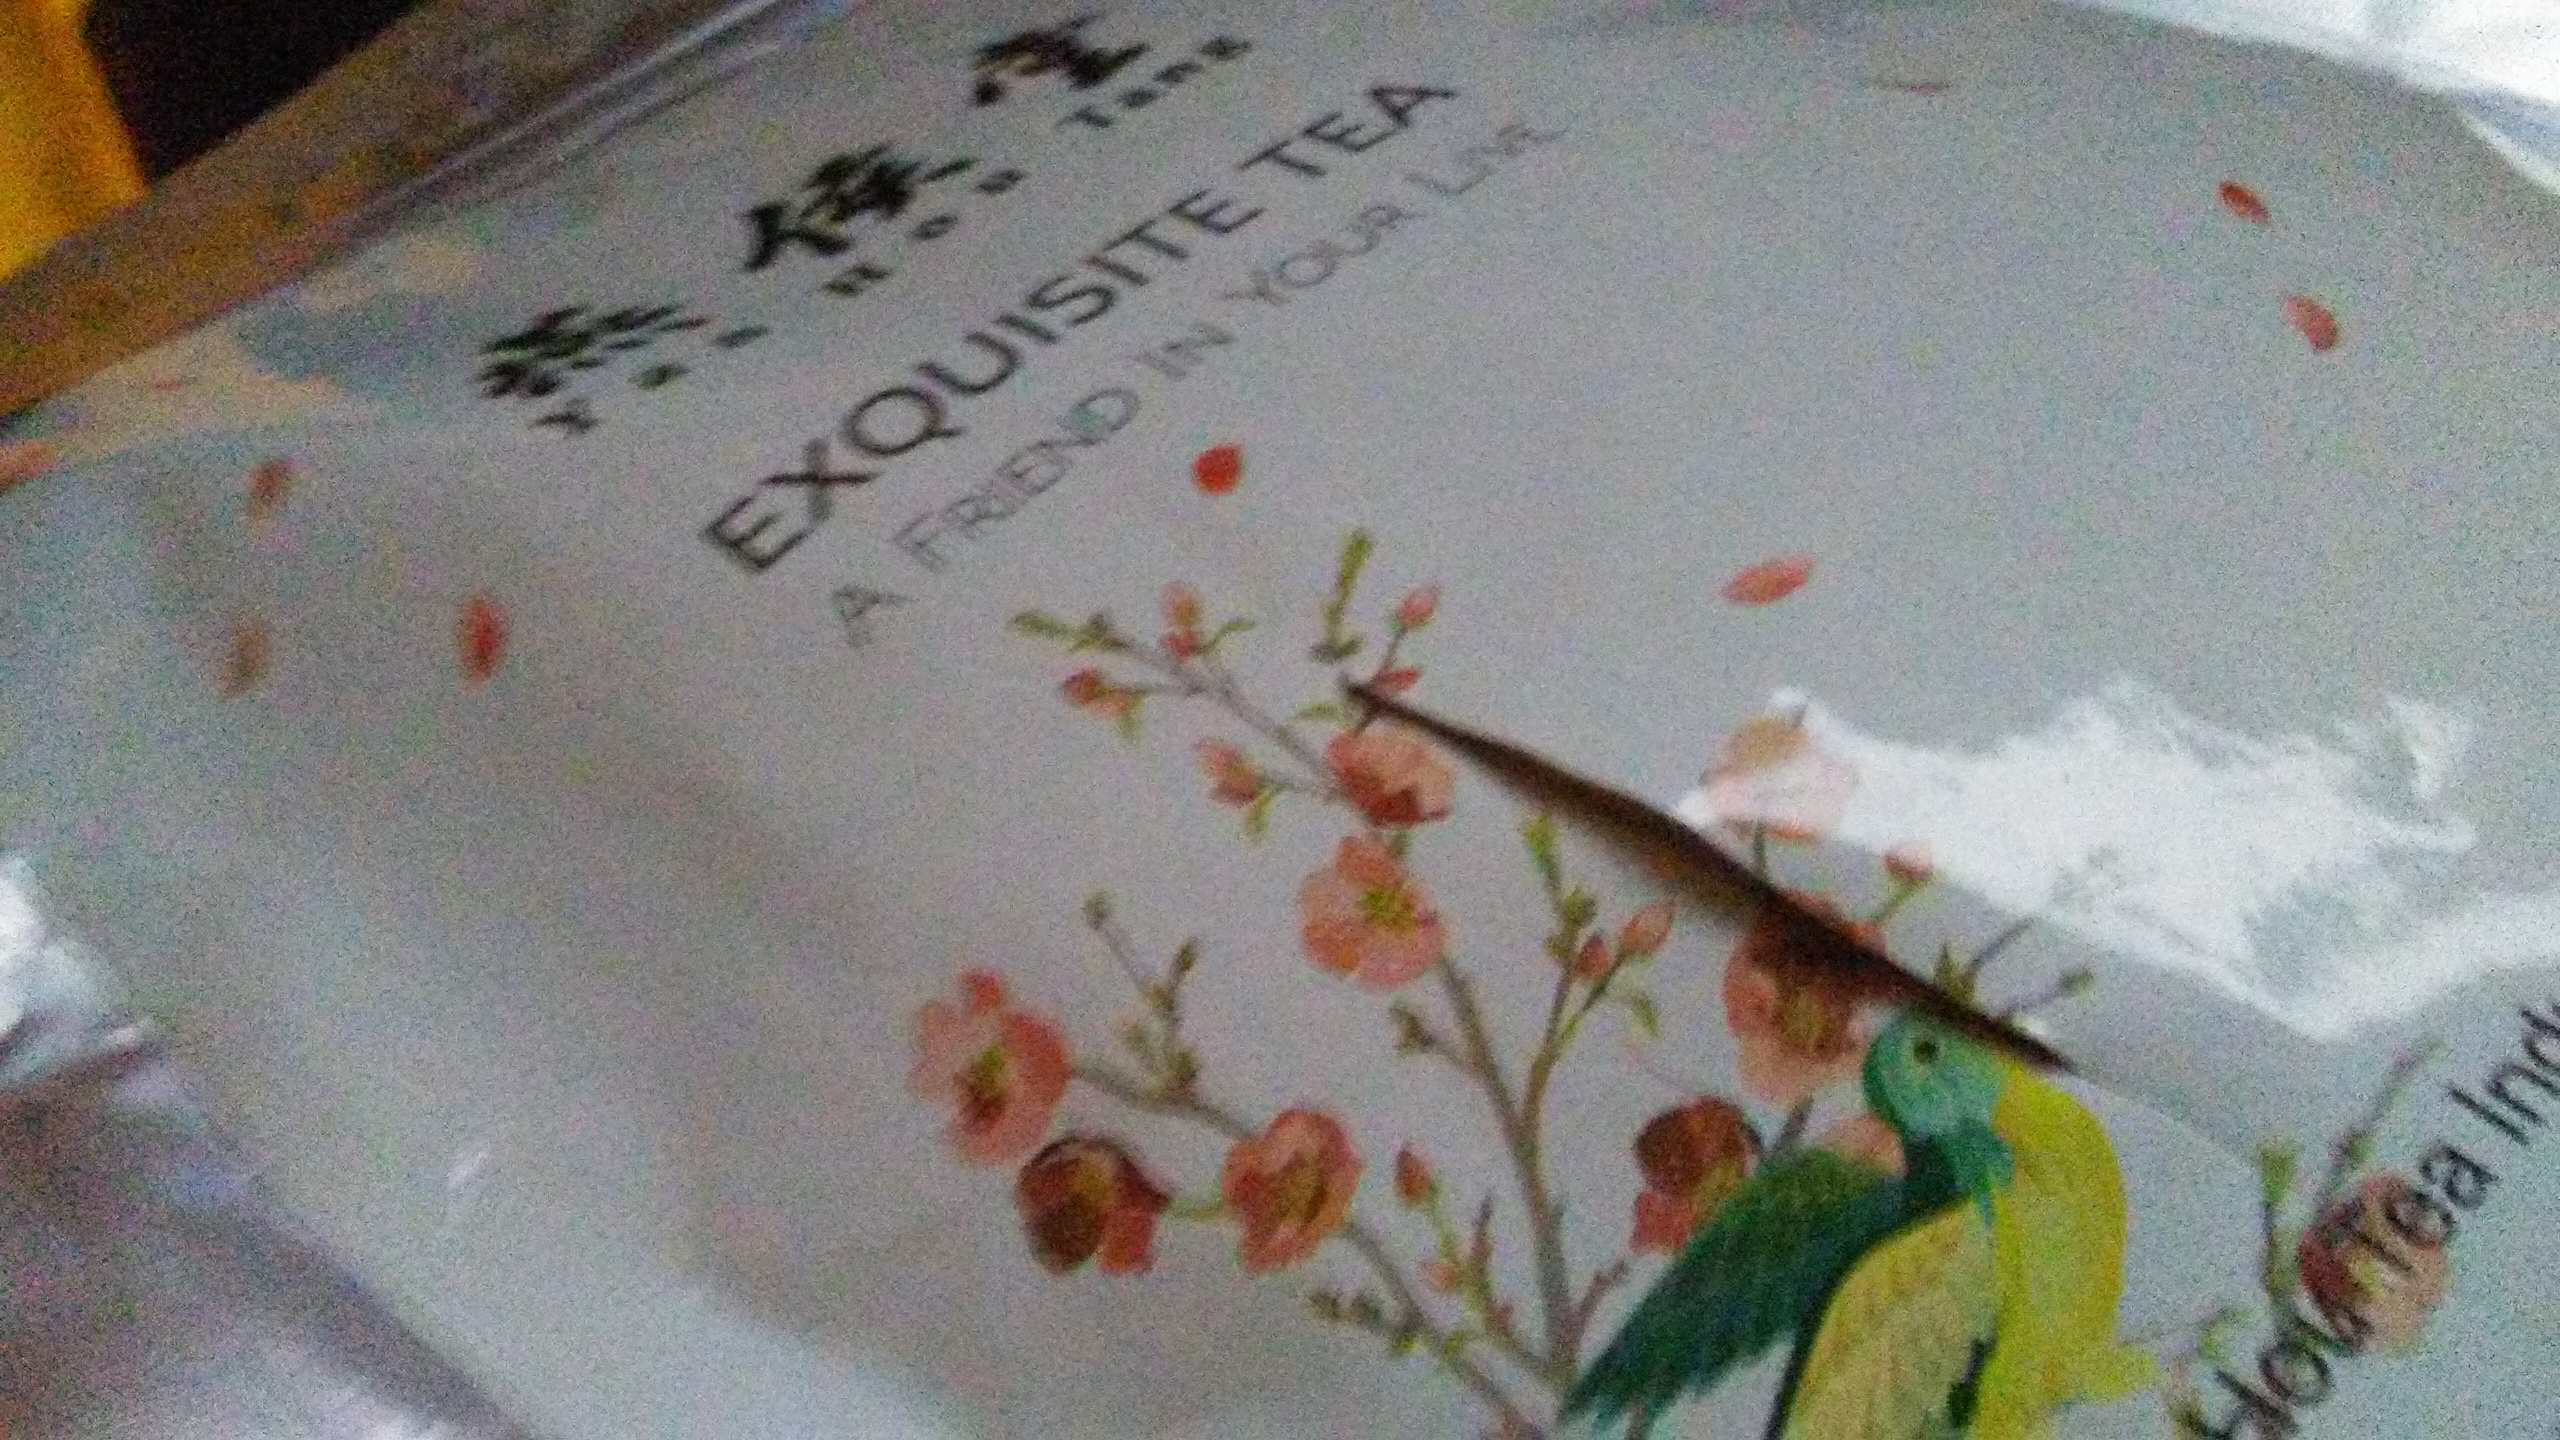 Tea arrived damaged, I was refunded but never got a chance to try the tea.